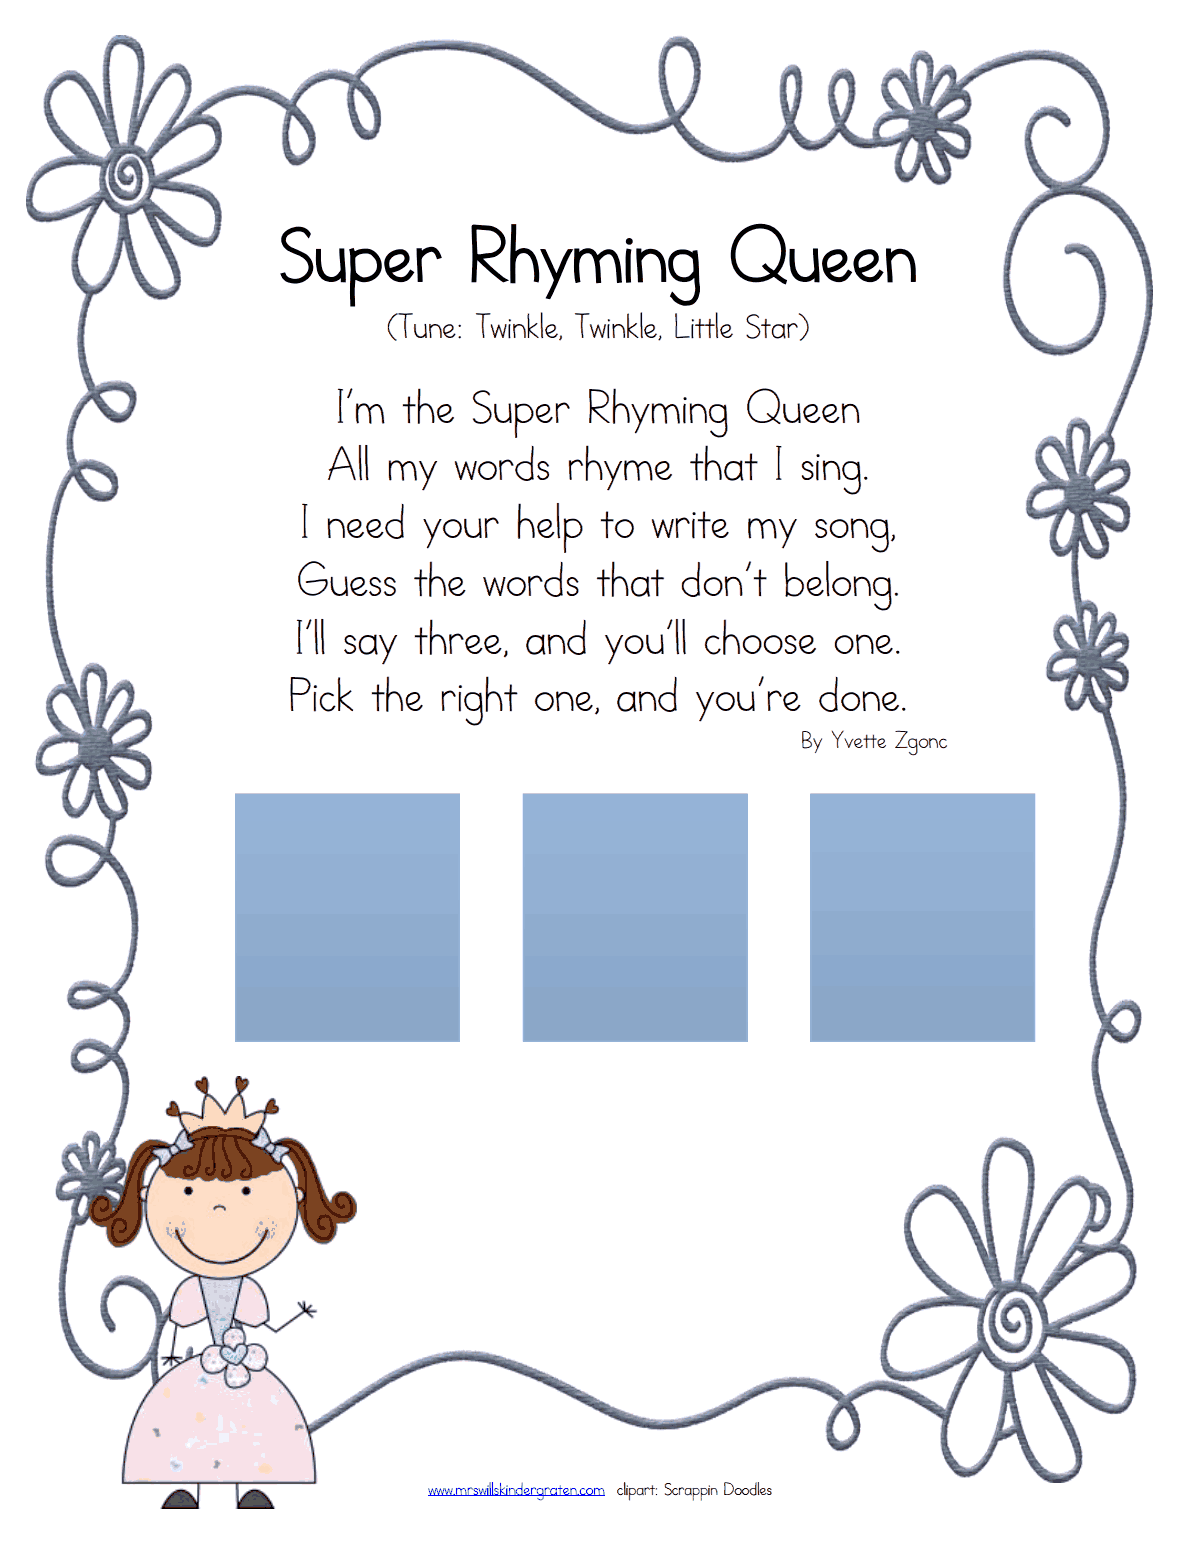 super rhyming queen.pdf | Rhyming words | Pinterest | Rhyming words ...